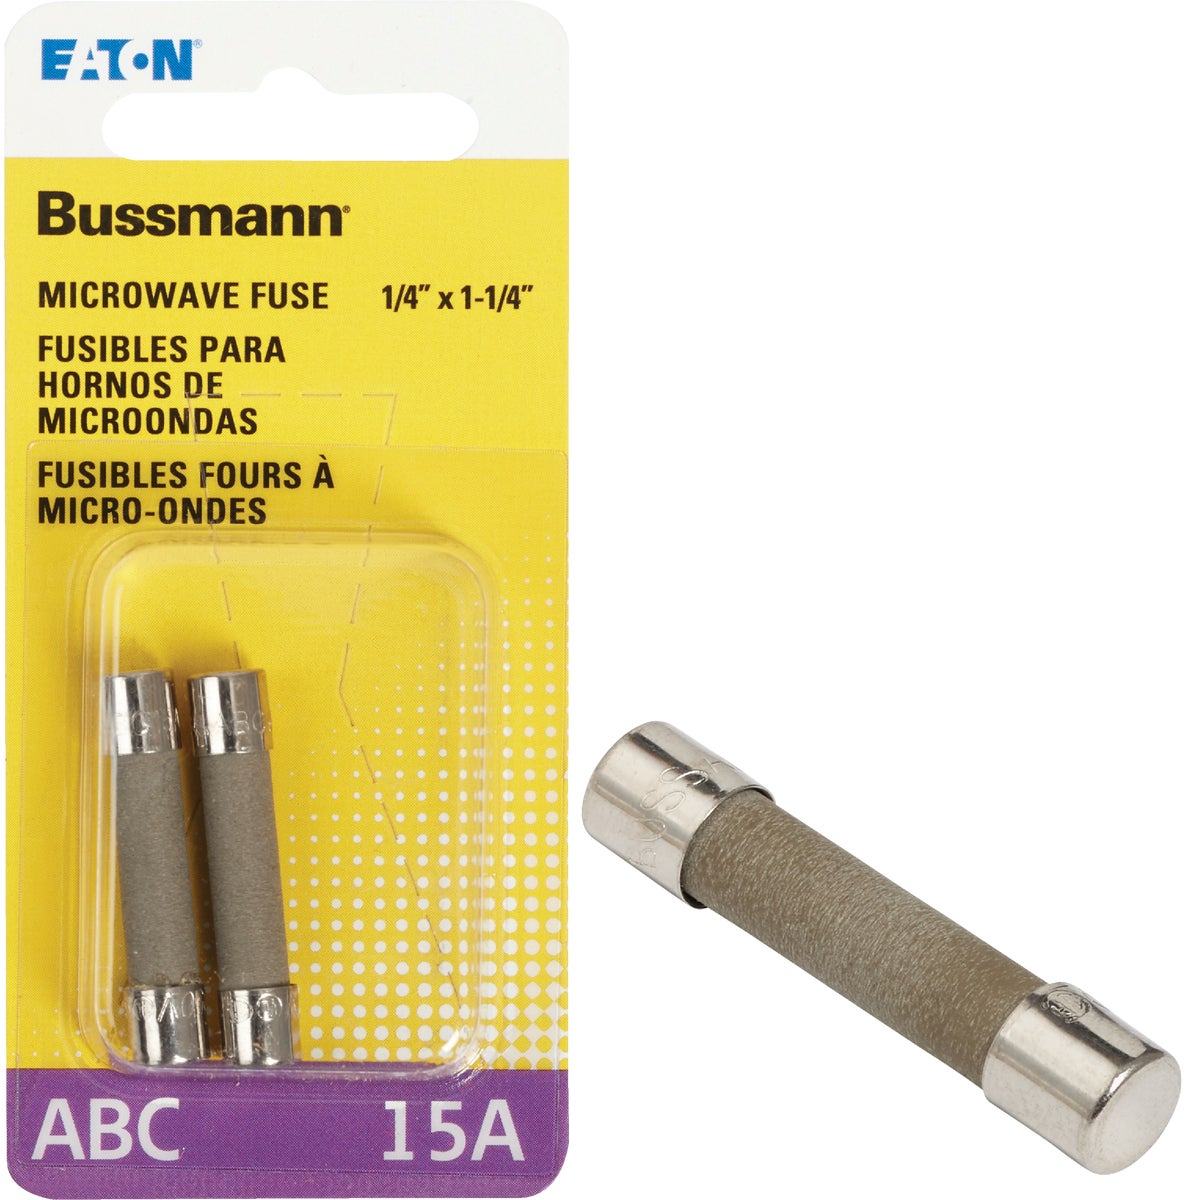 2CD 15A ELECTRONIC FUSE - BP/ABC-15 by Bussmann Cooper